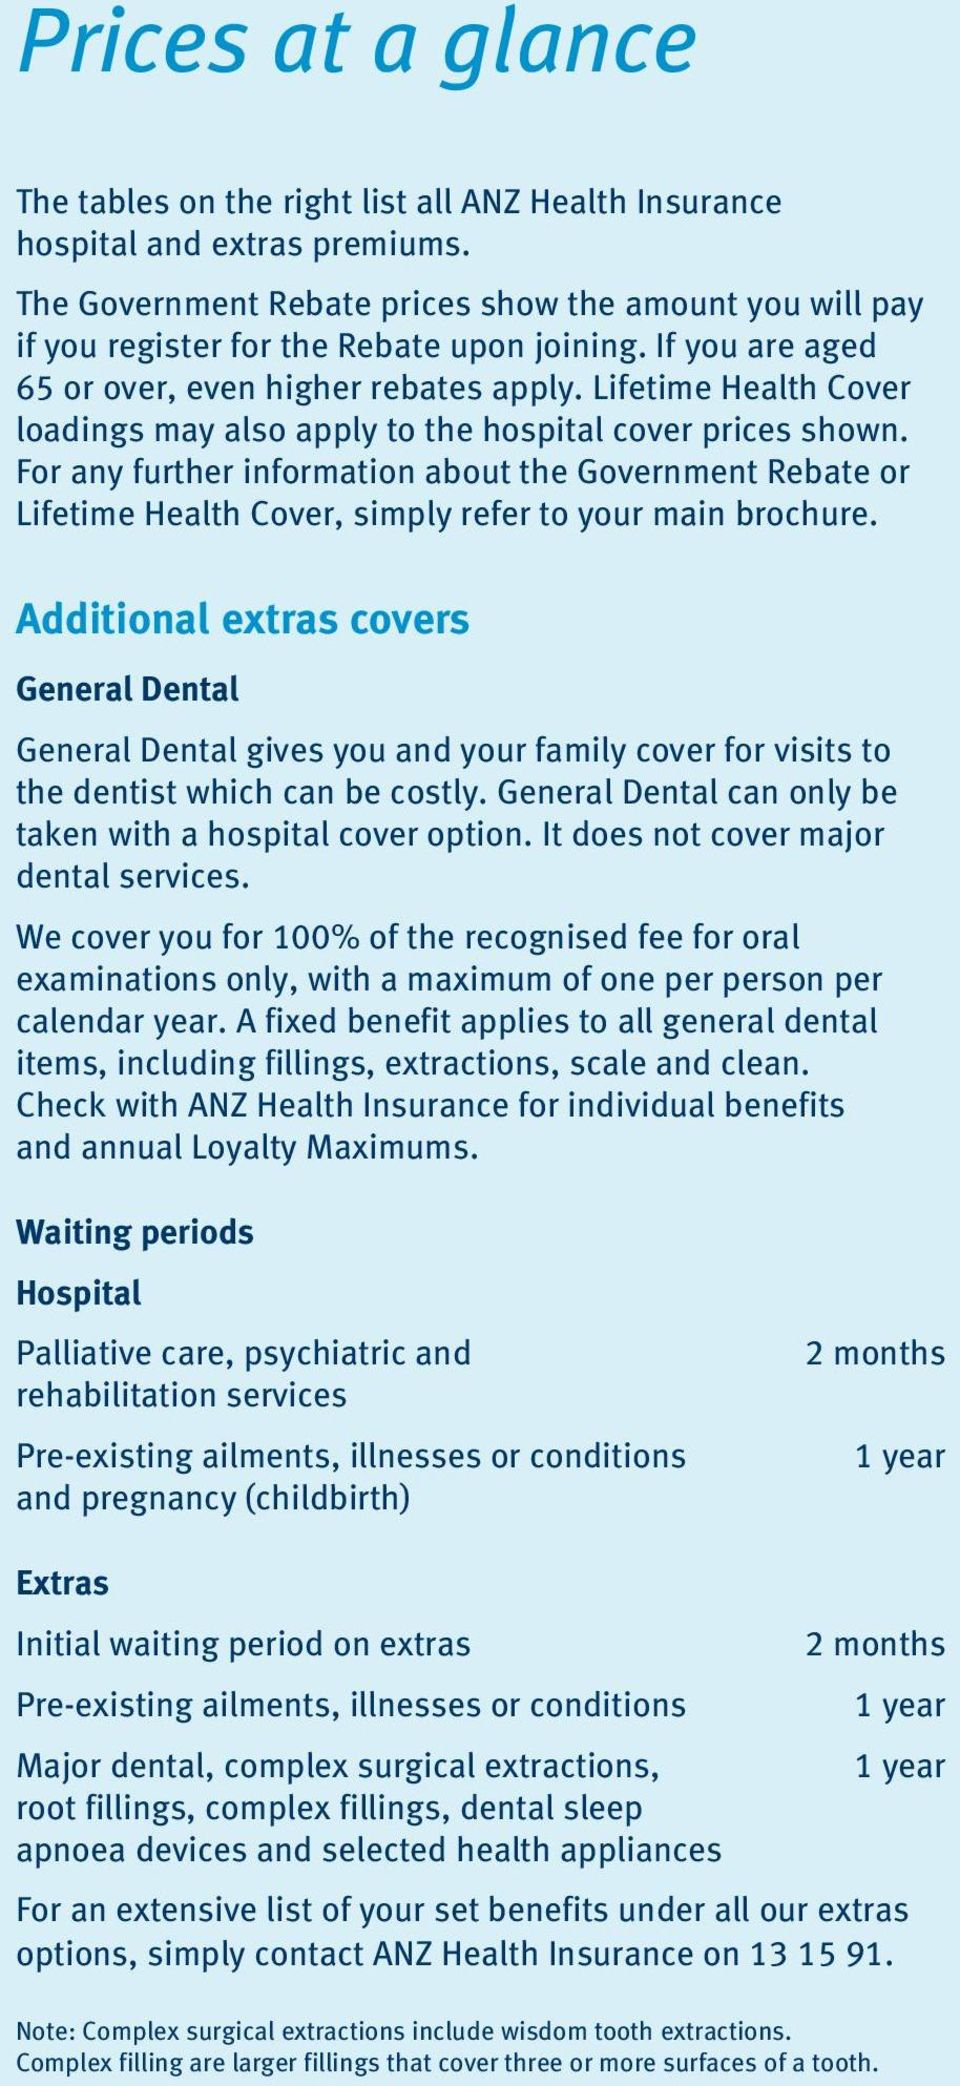 Lifetime Health Cover loadings may also apply to the hospital cover prices shown. For any further information about the Government Rebate or Lifetime Health Cover, simply refer to your main brochure.